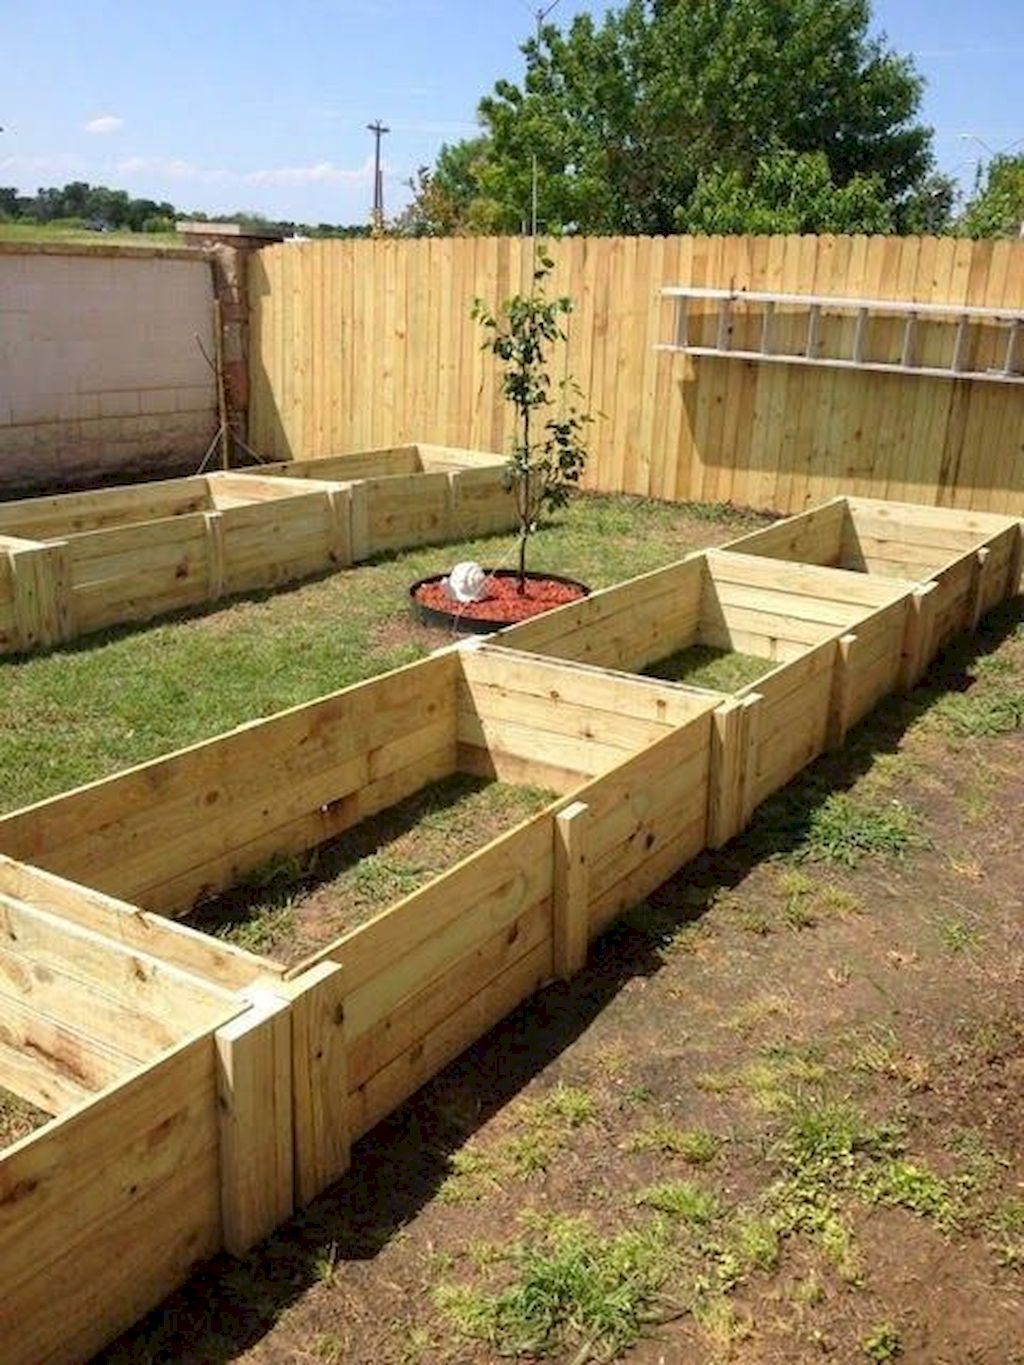 55 DIY Raised Garden Bed Plans & Ideas You Can Build Diy